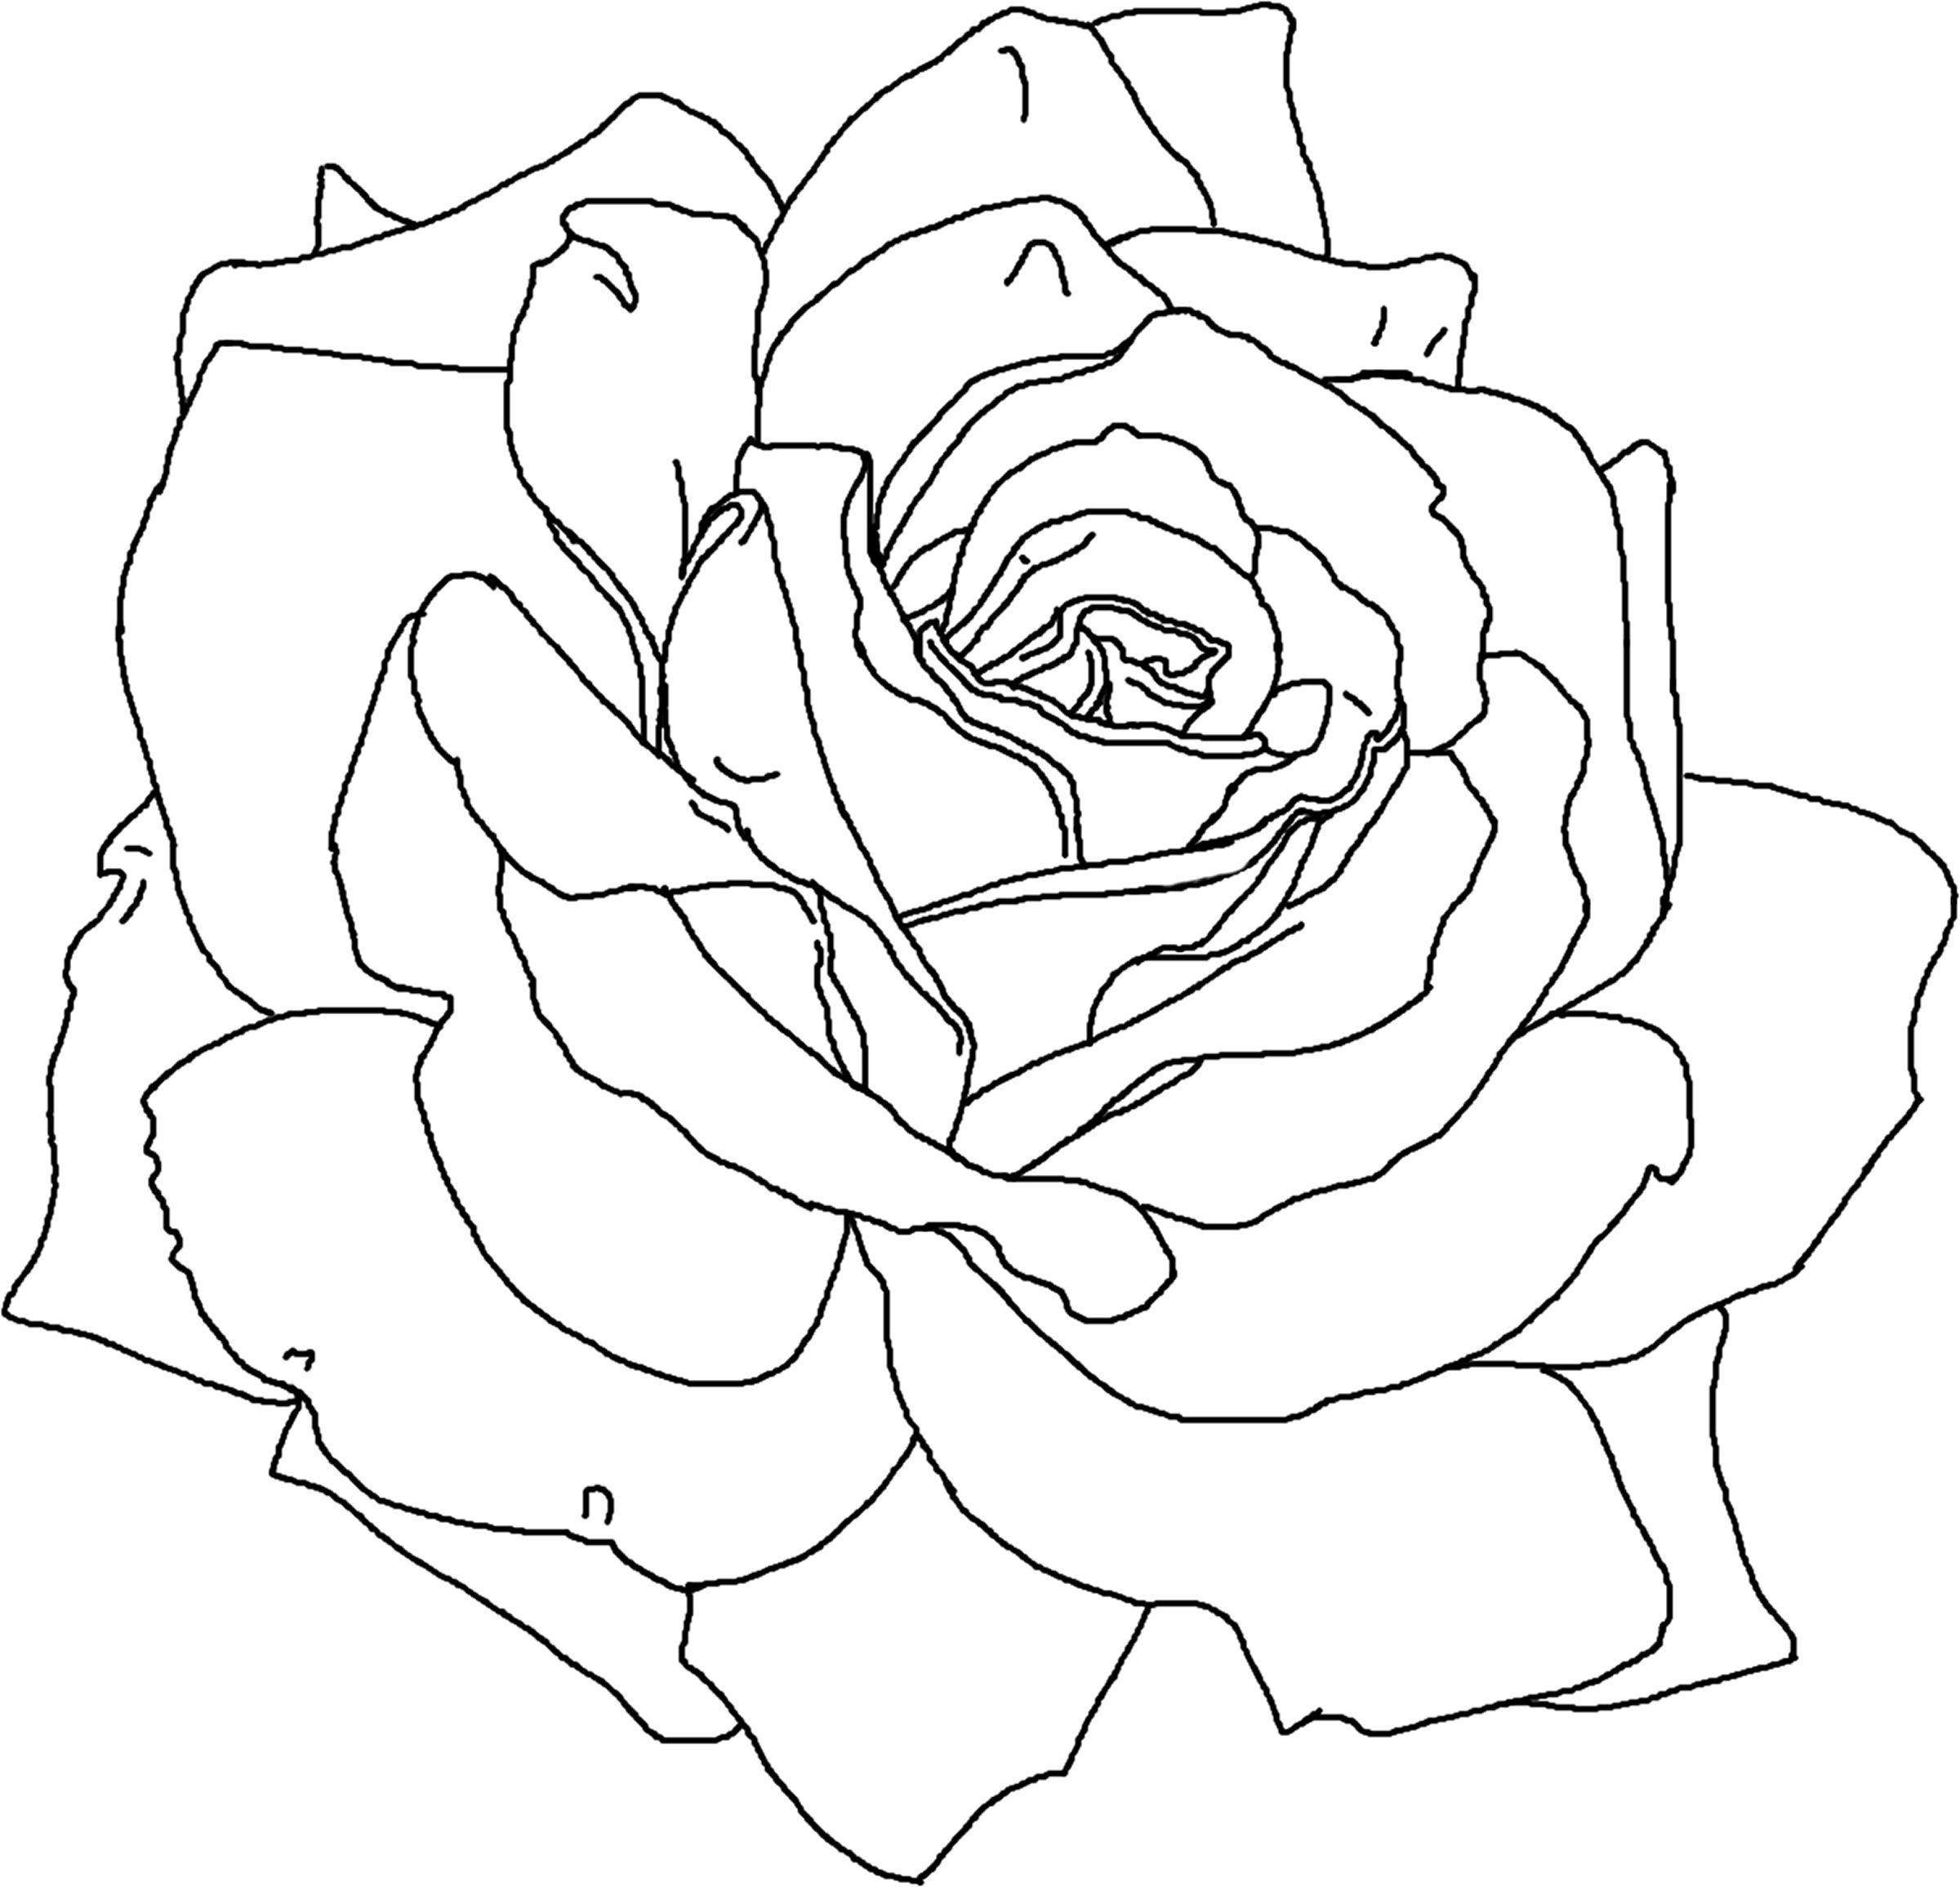 Download and Print rose flower coloring pages printable | school ...